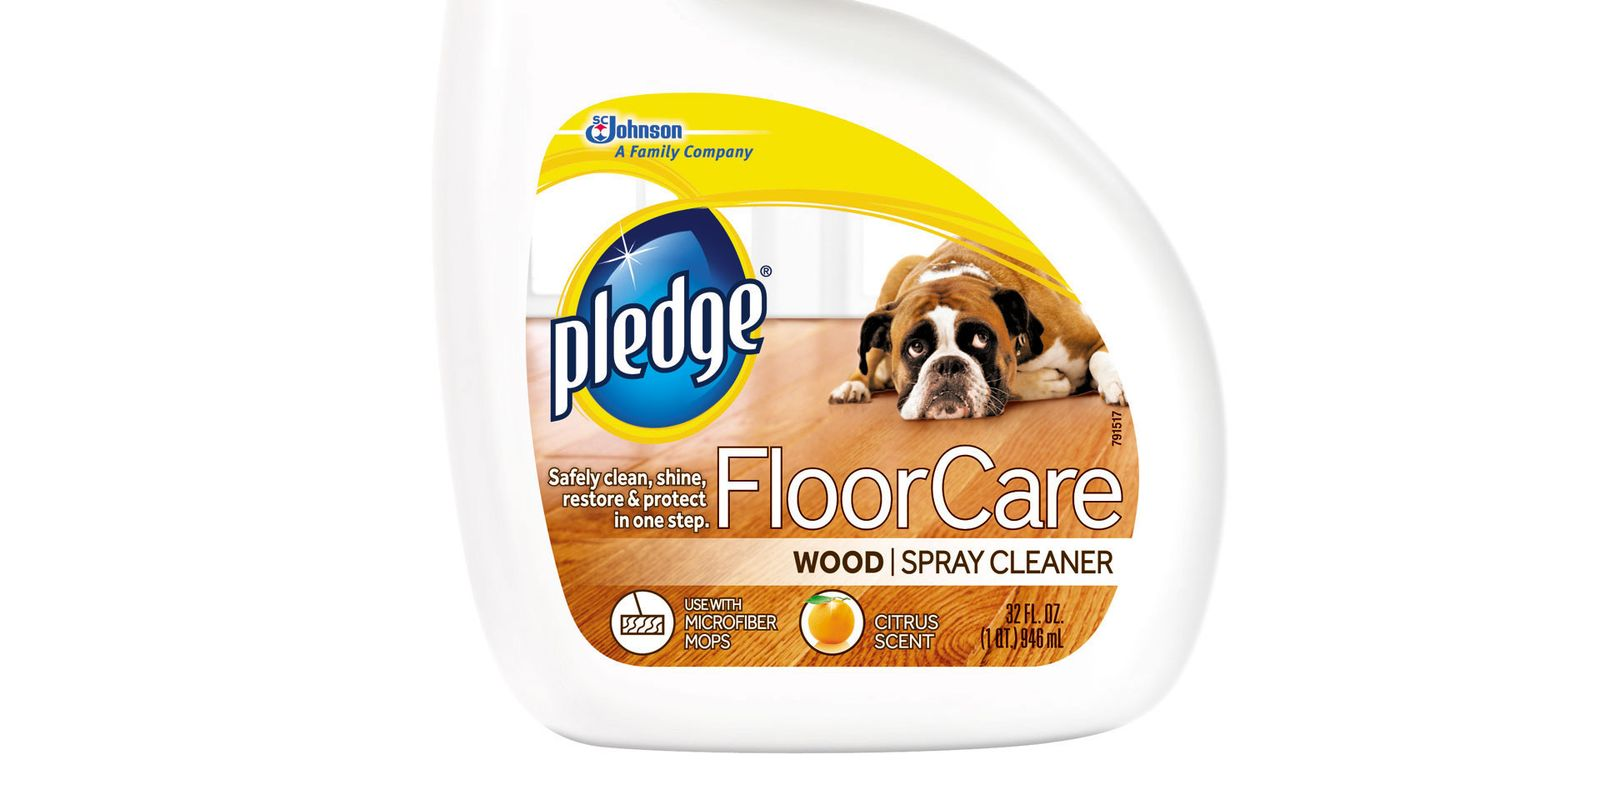 Cleaner For Hardwood Floors professional hardwood floor cleaning Pledge Floorcare Wood Spray Cleaner Review